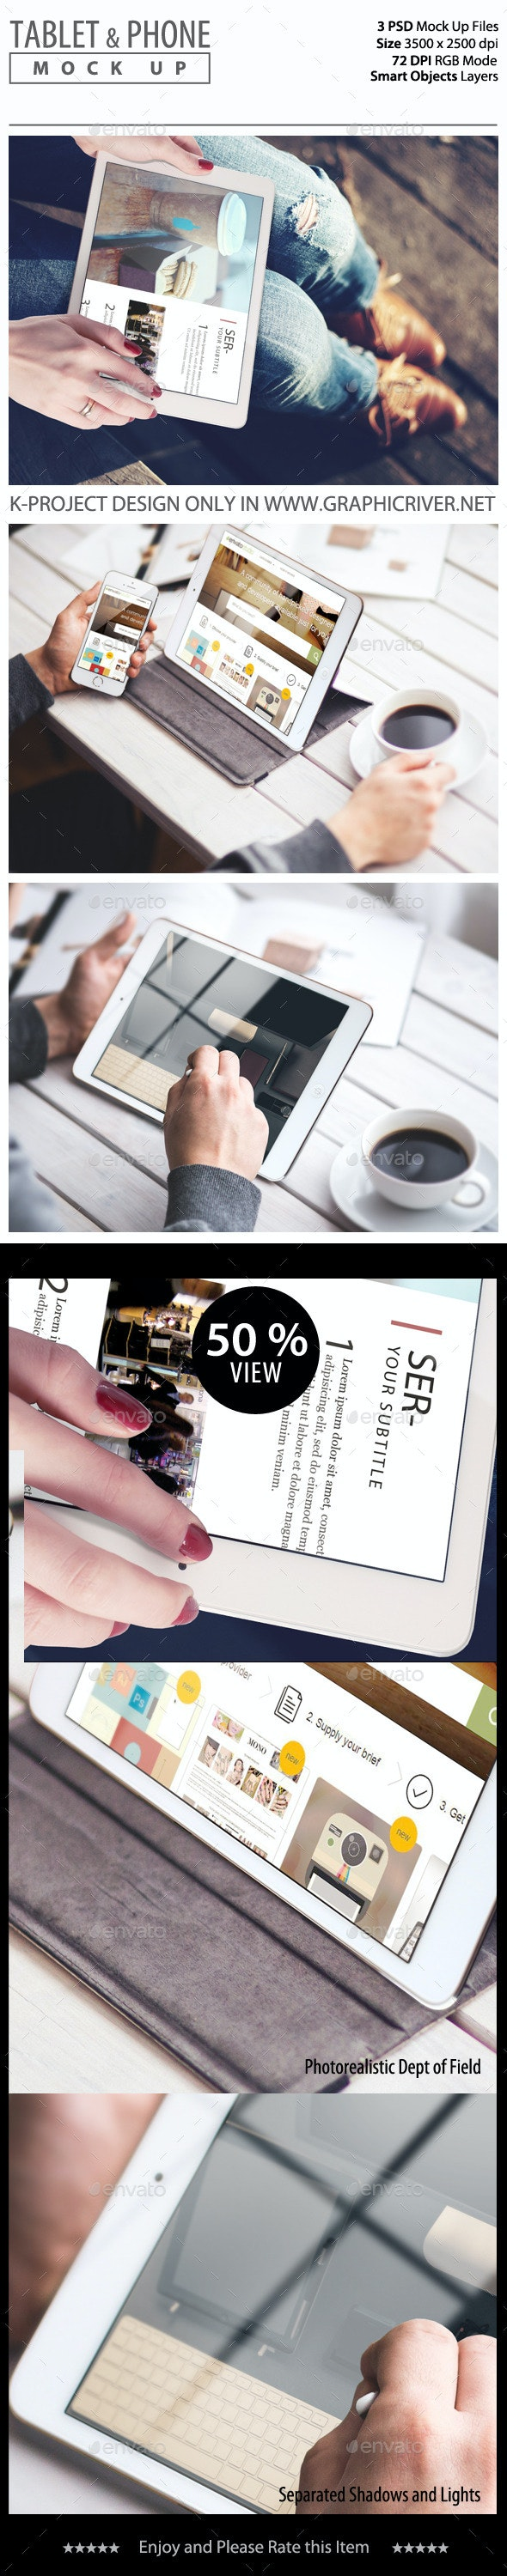 Tablet and Phone Mock Up - Mobile Displays